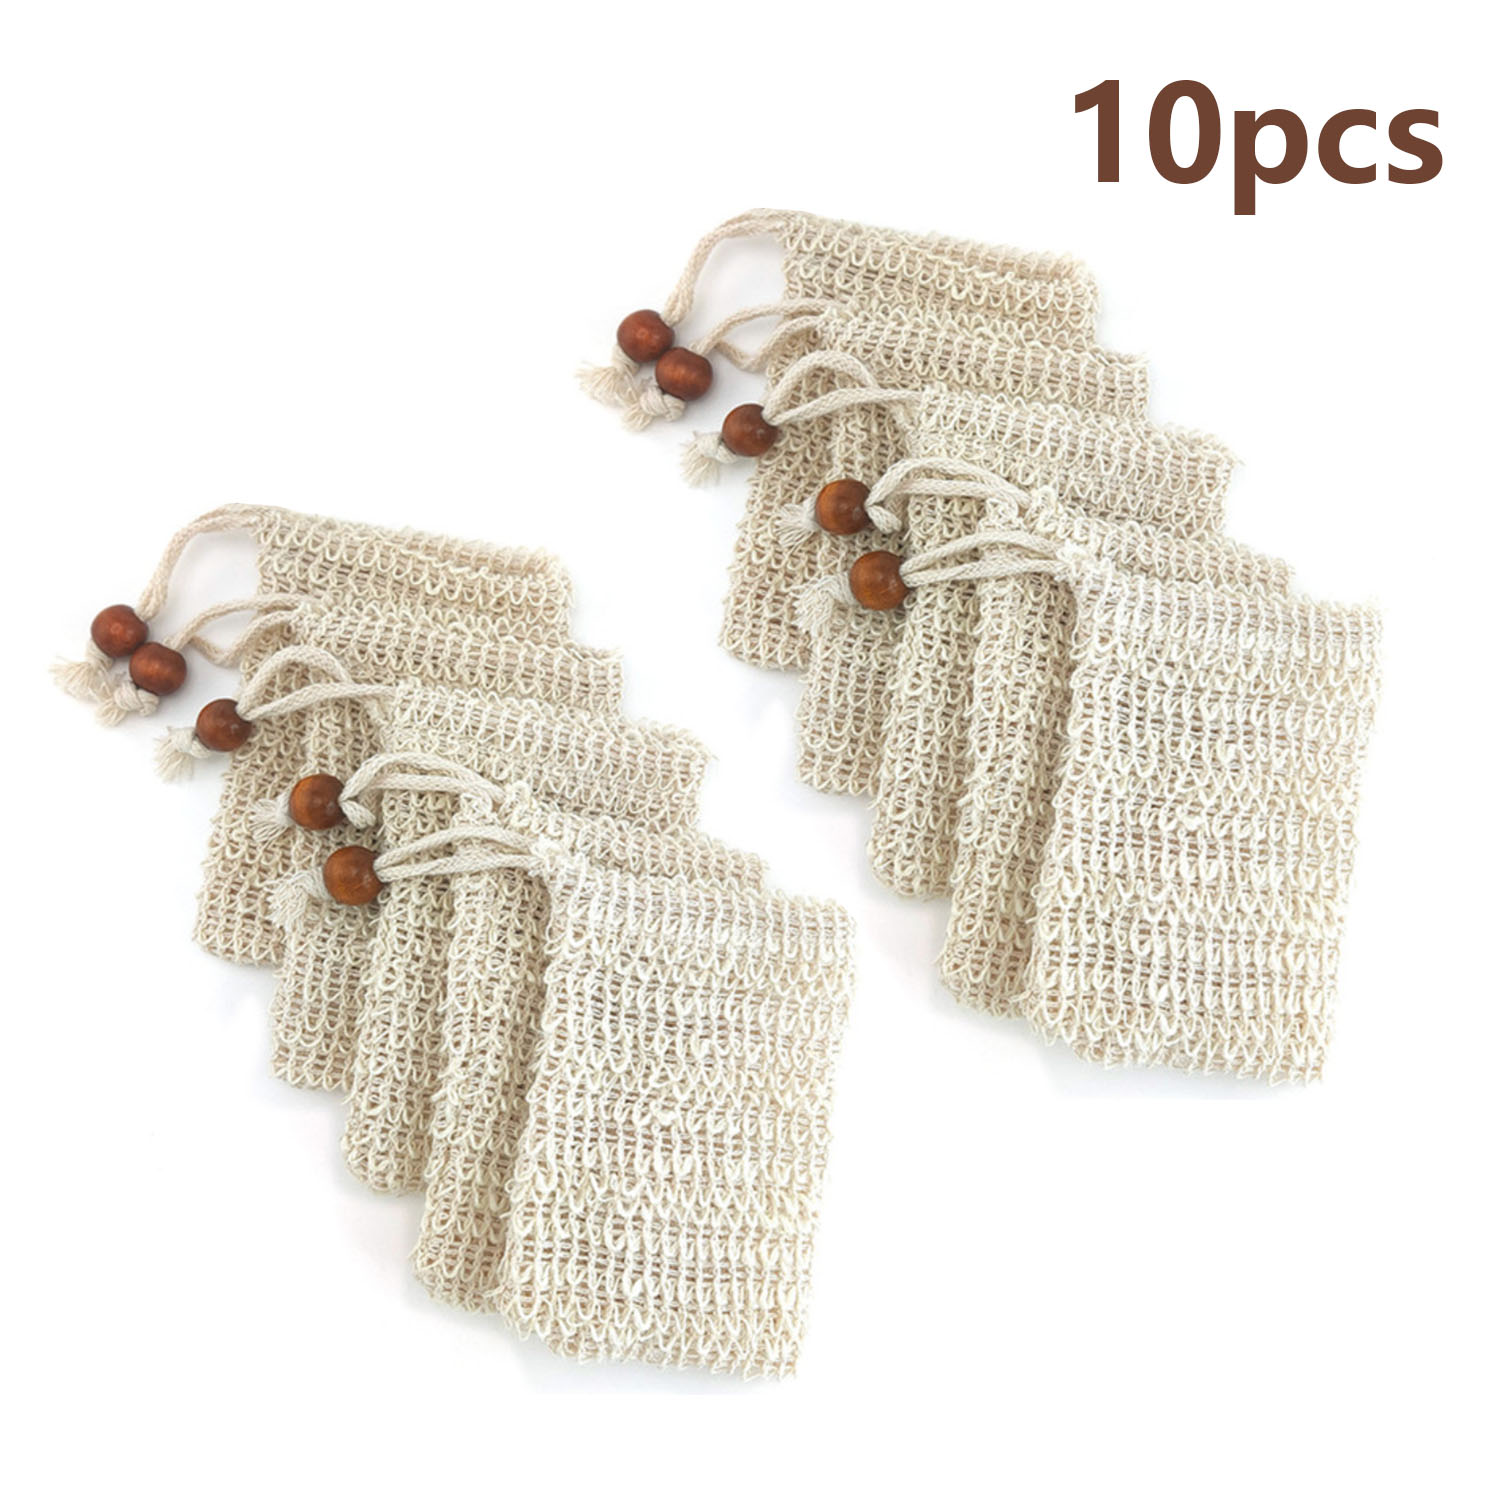 5pcs Soap Bag Natural Fiber Exfoliating Mesh Pouch Holder Soap Saver With Drawstring For Foaming Drying Massaging